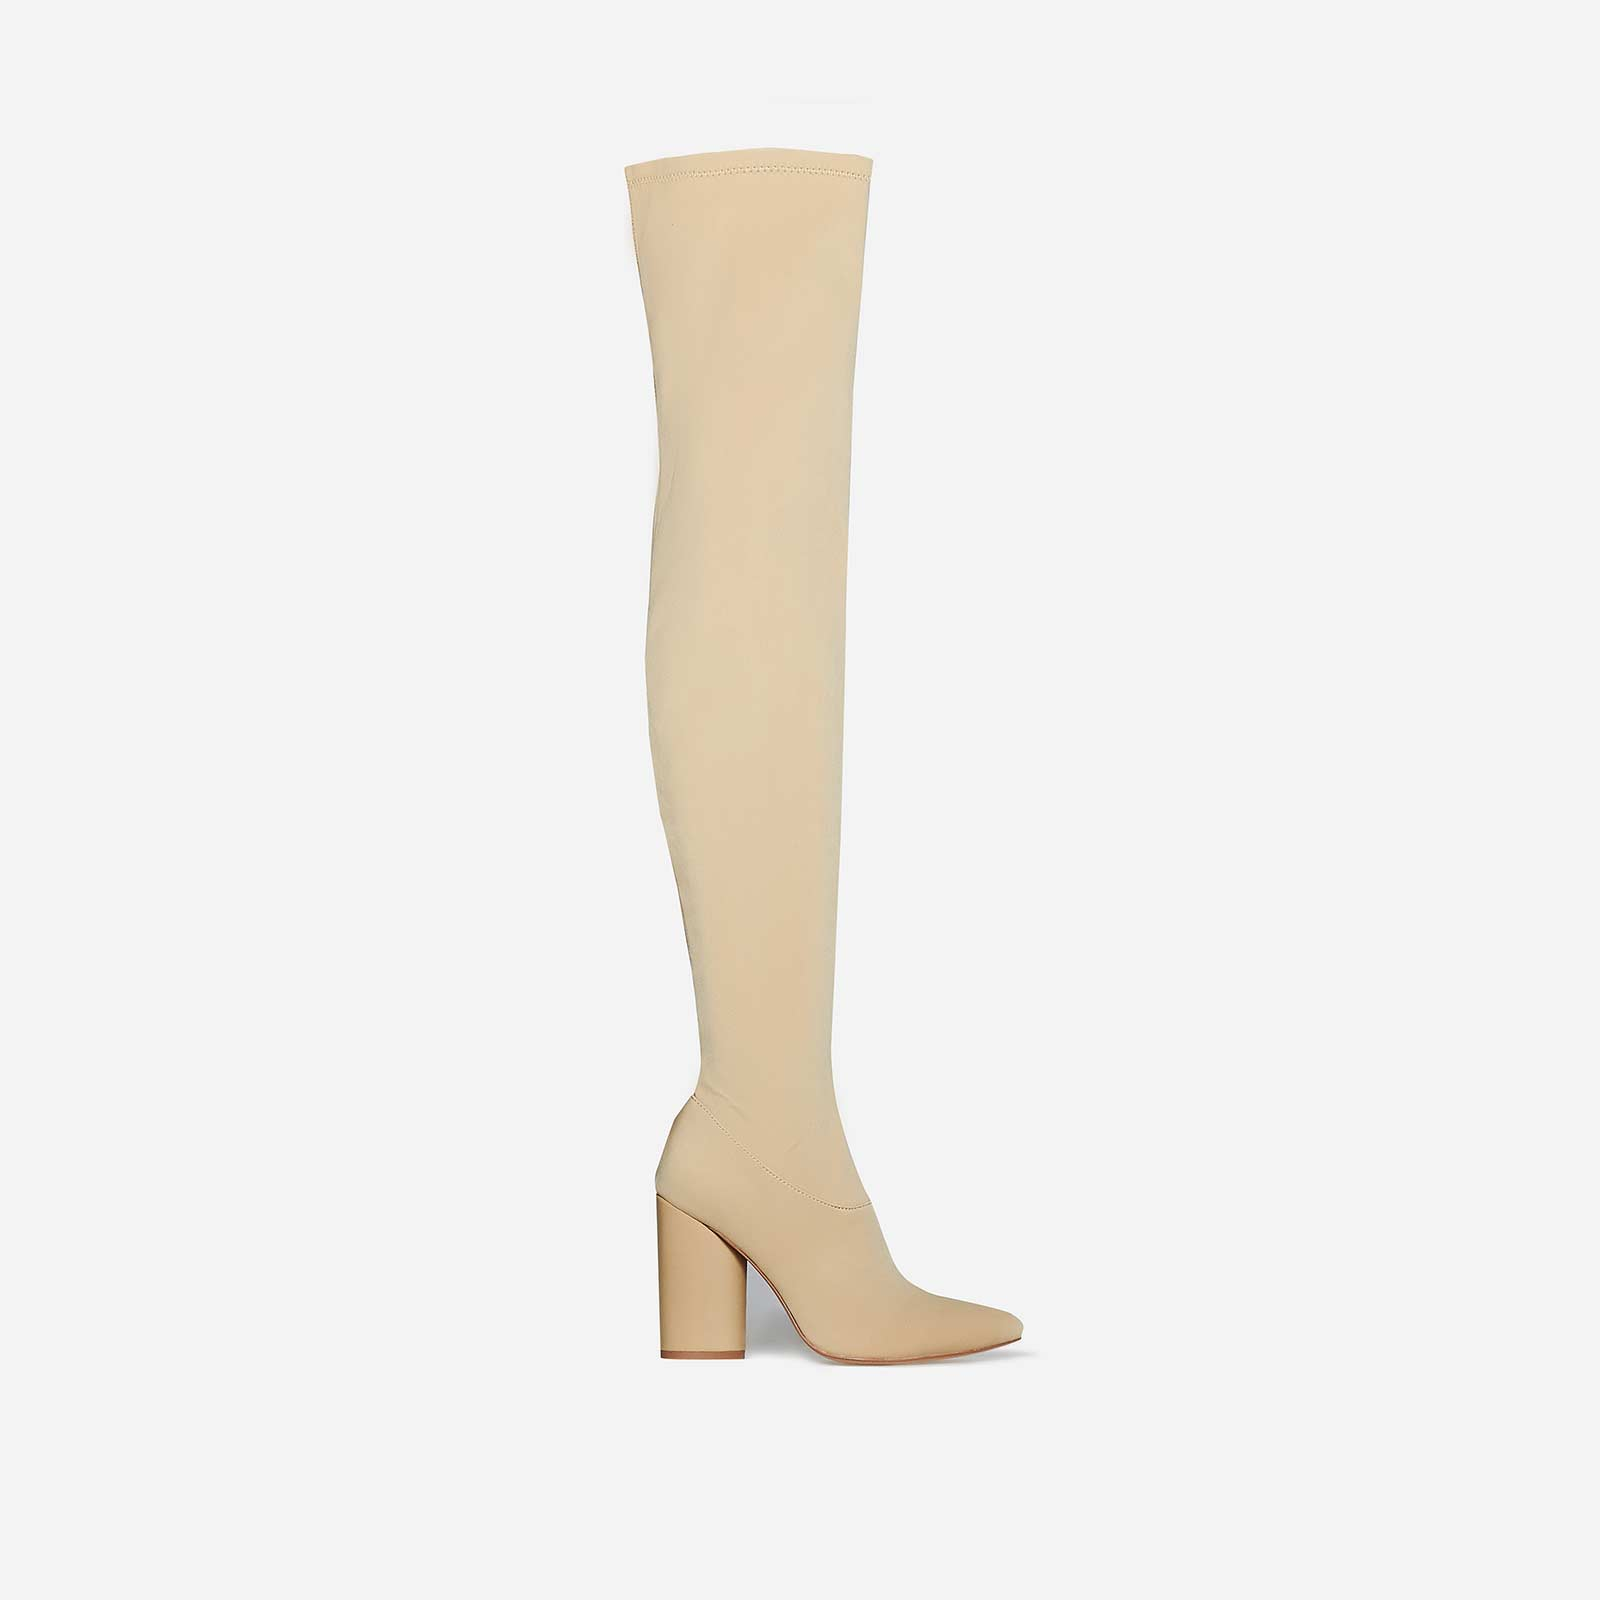 Shoes Jamila Thigh High Long Boot In Nude Lycra, Women's Size UK 9